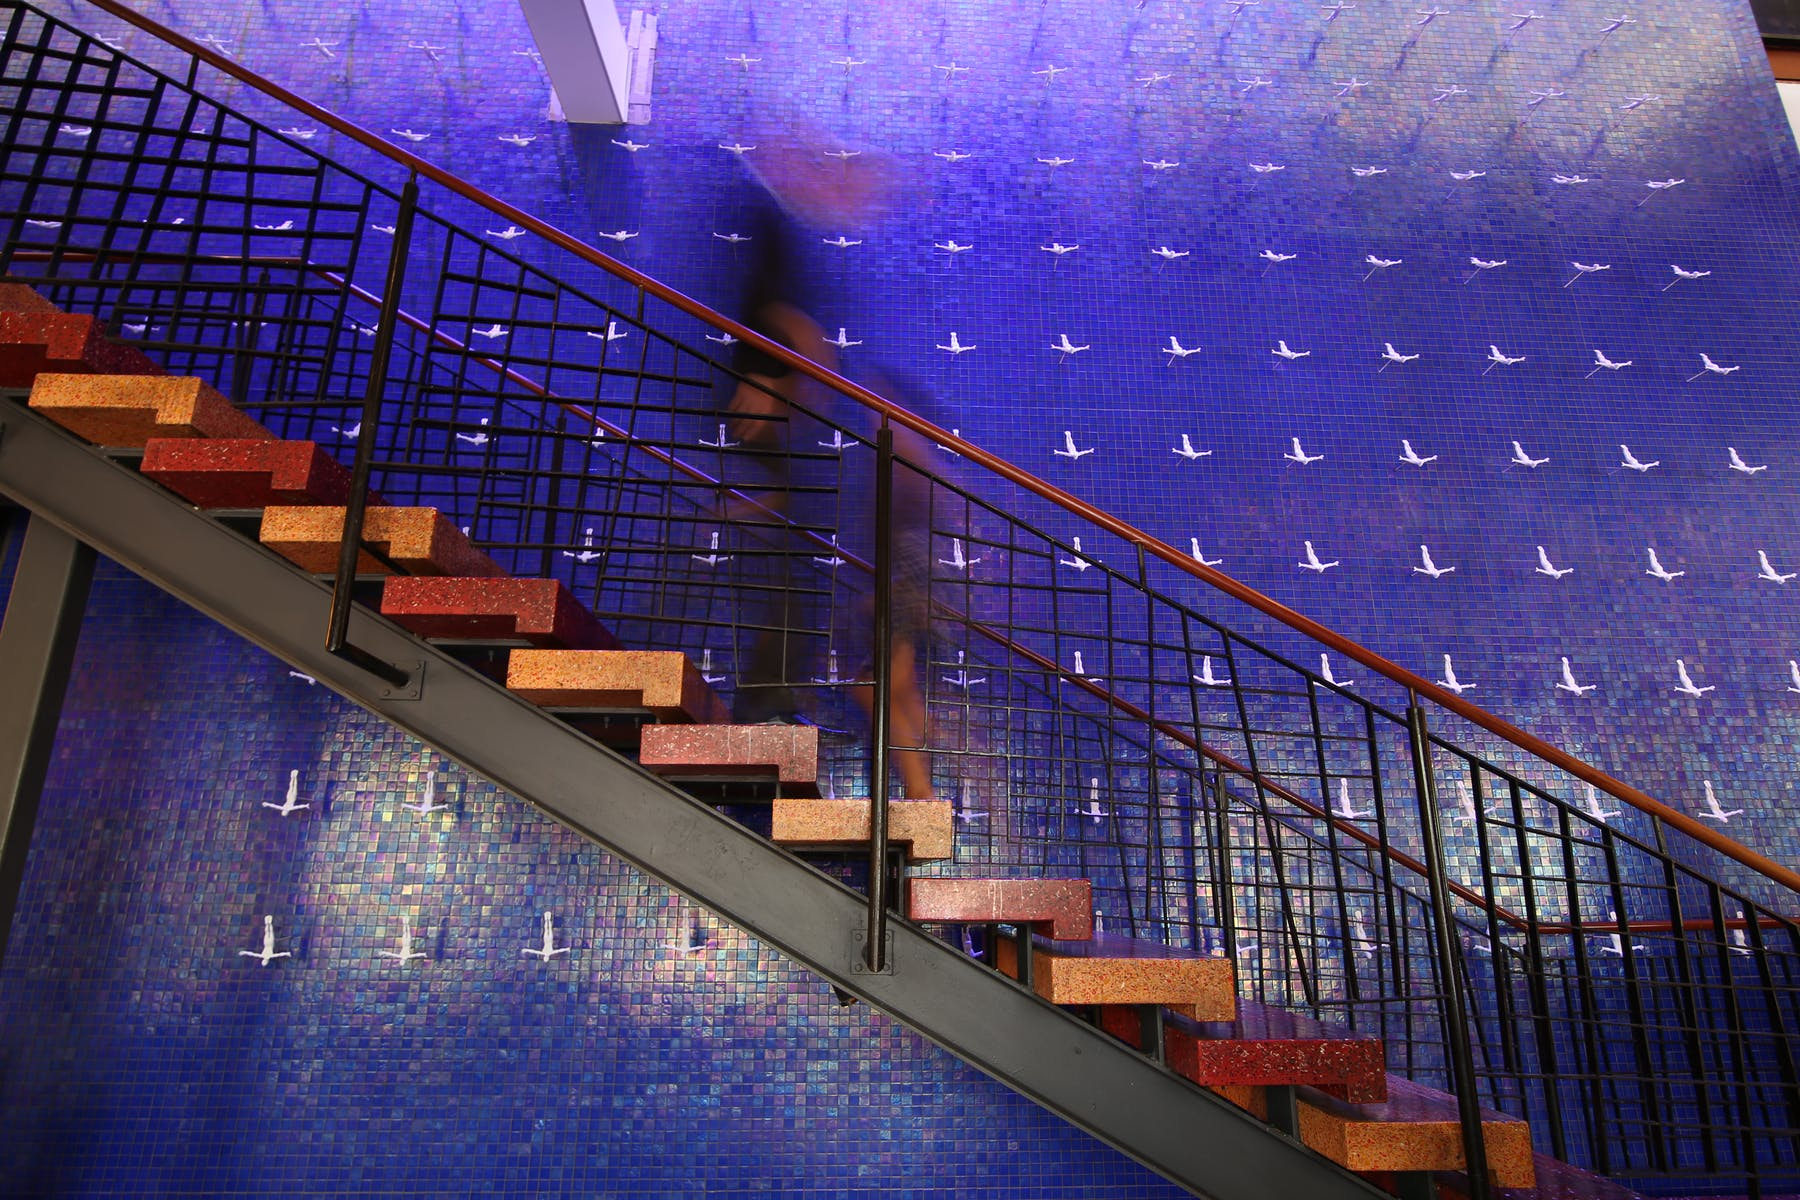 stairway at Rosa Mexicano by Lincoln Center, NY